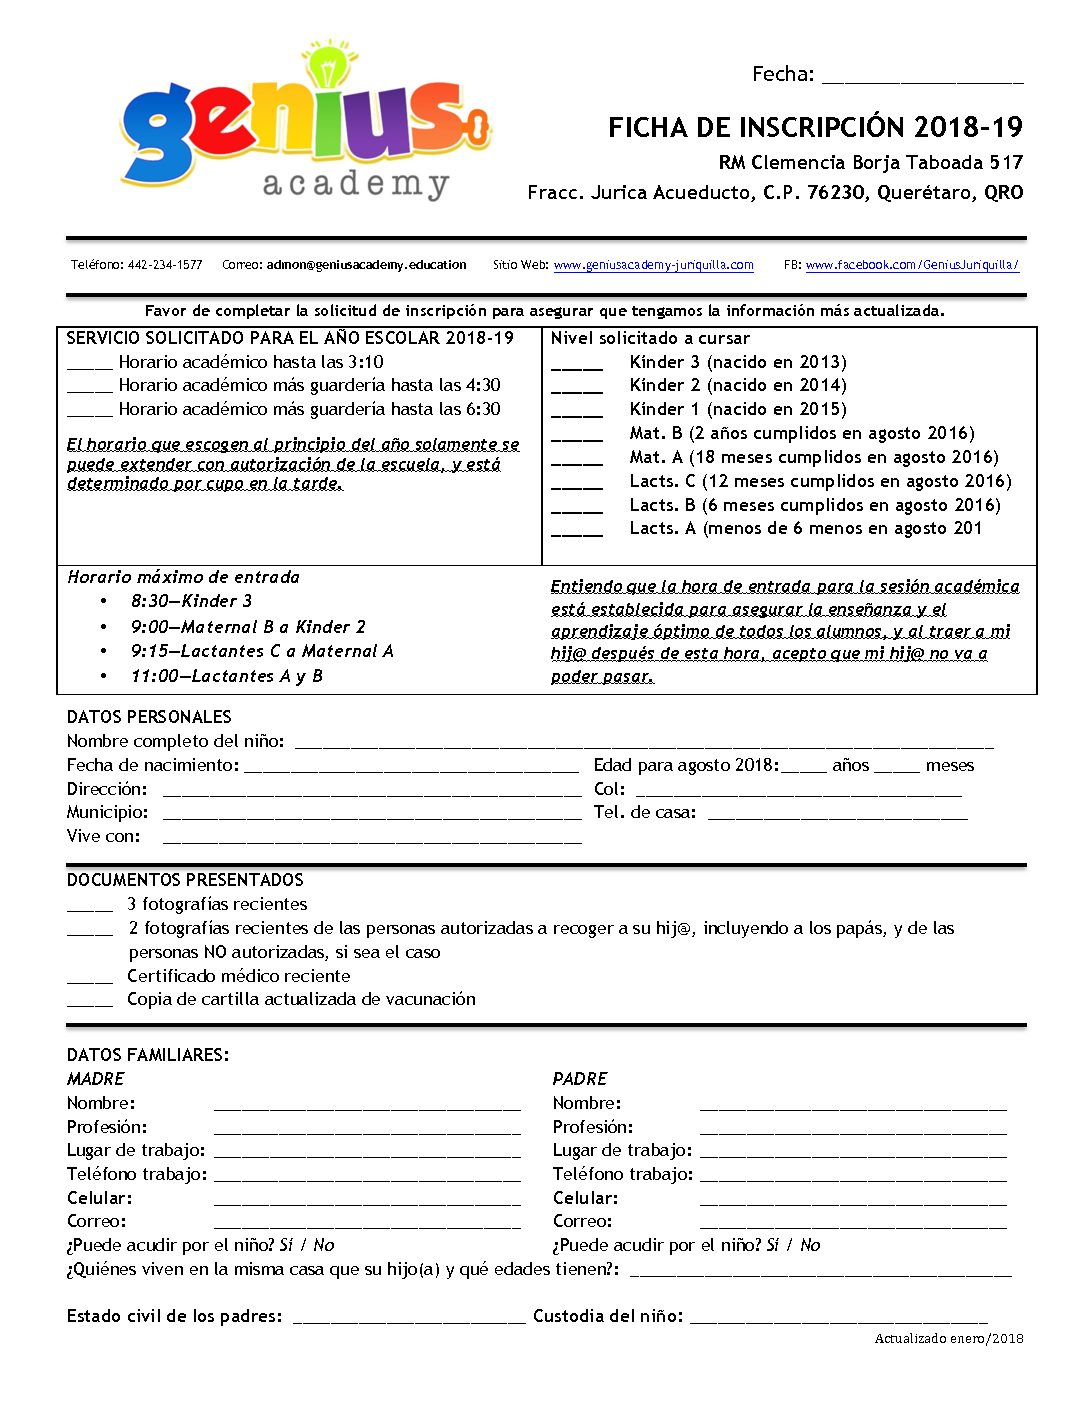 Requisitos 2018-19 – Juriquilla